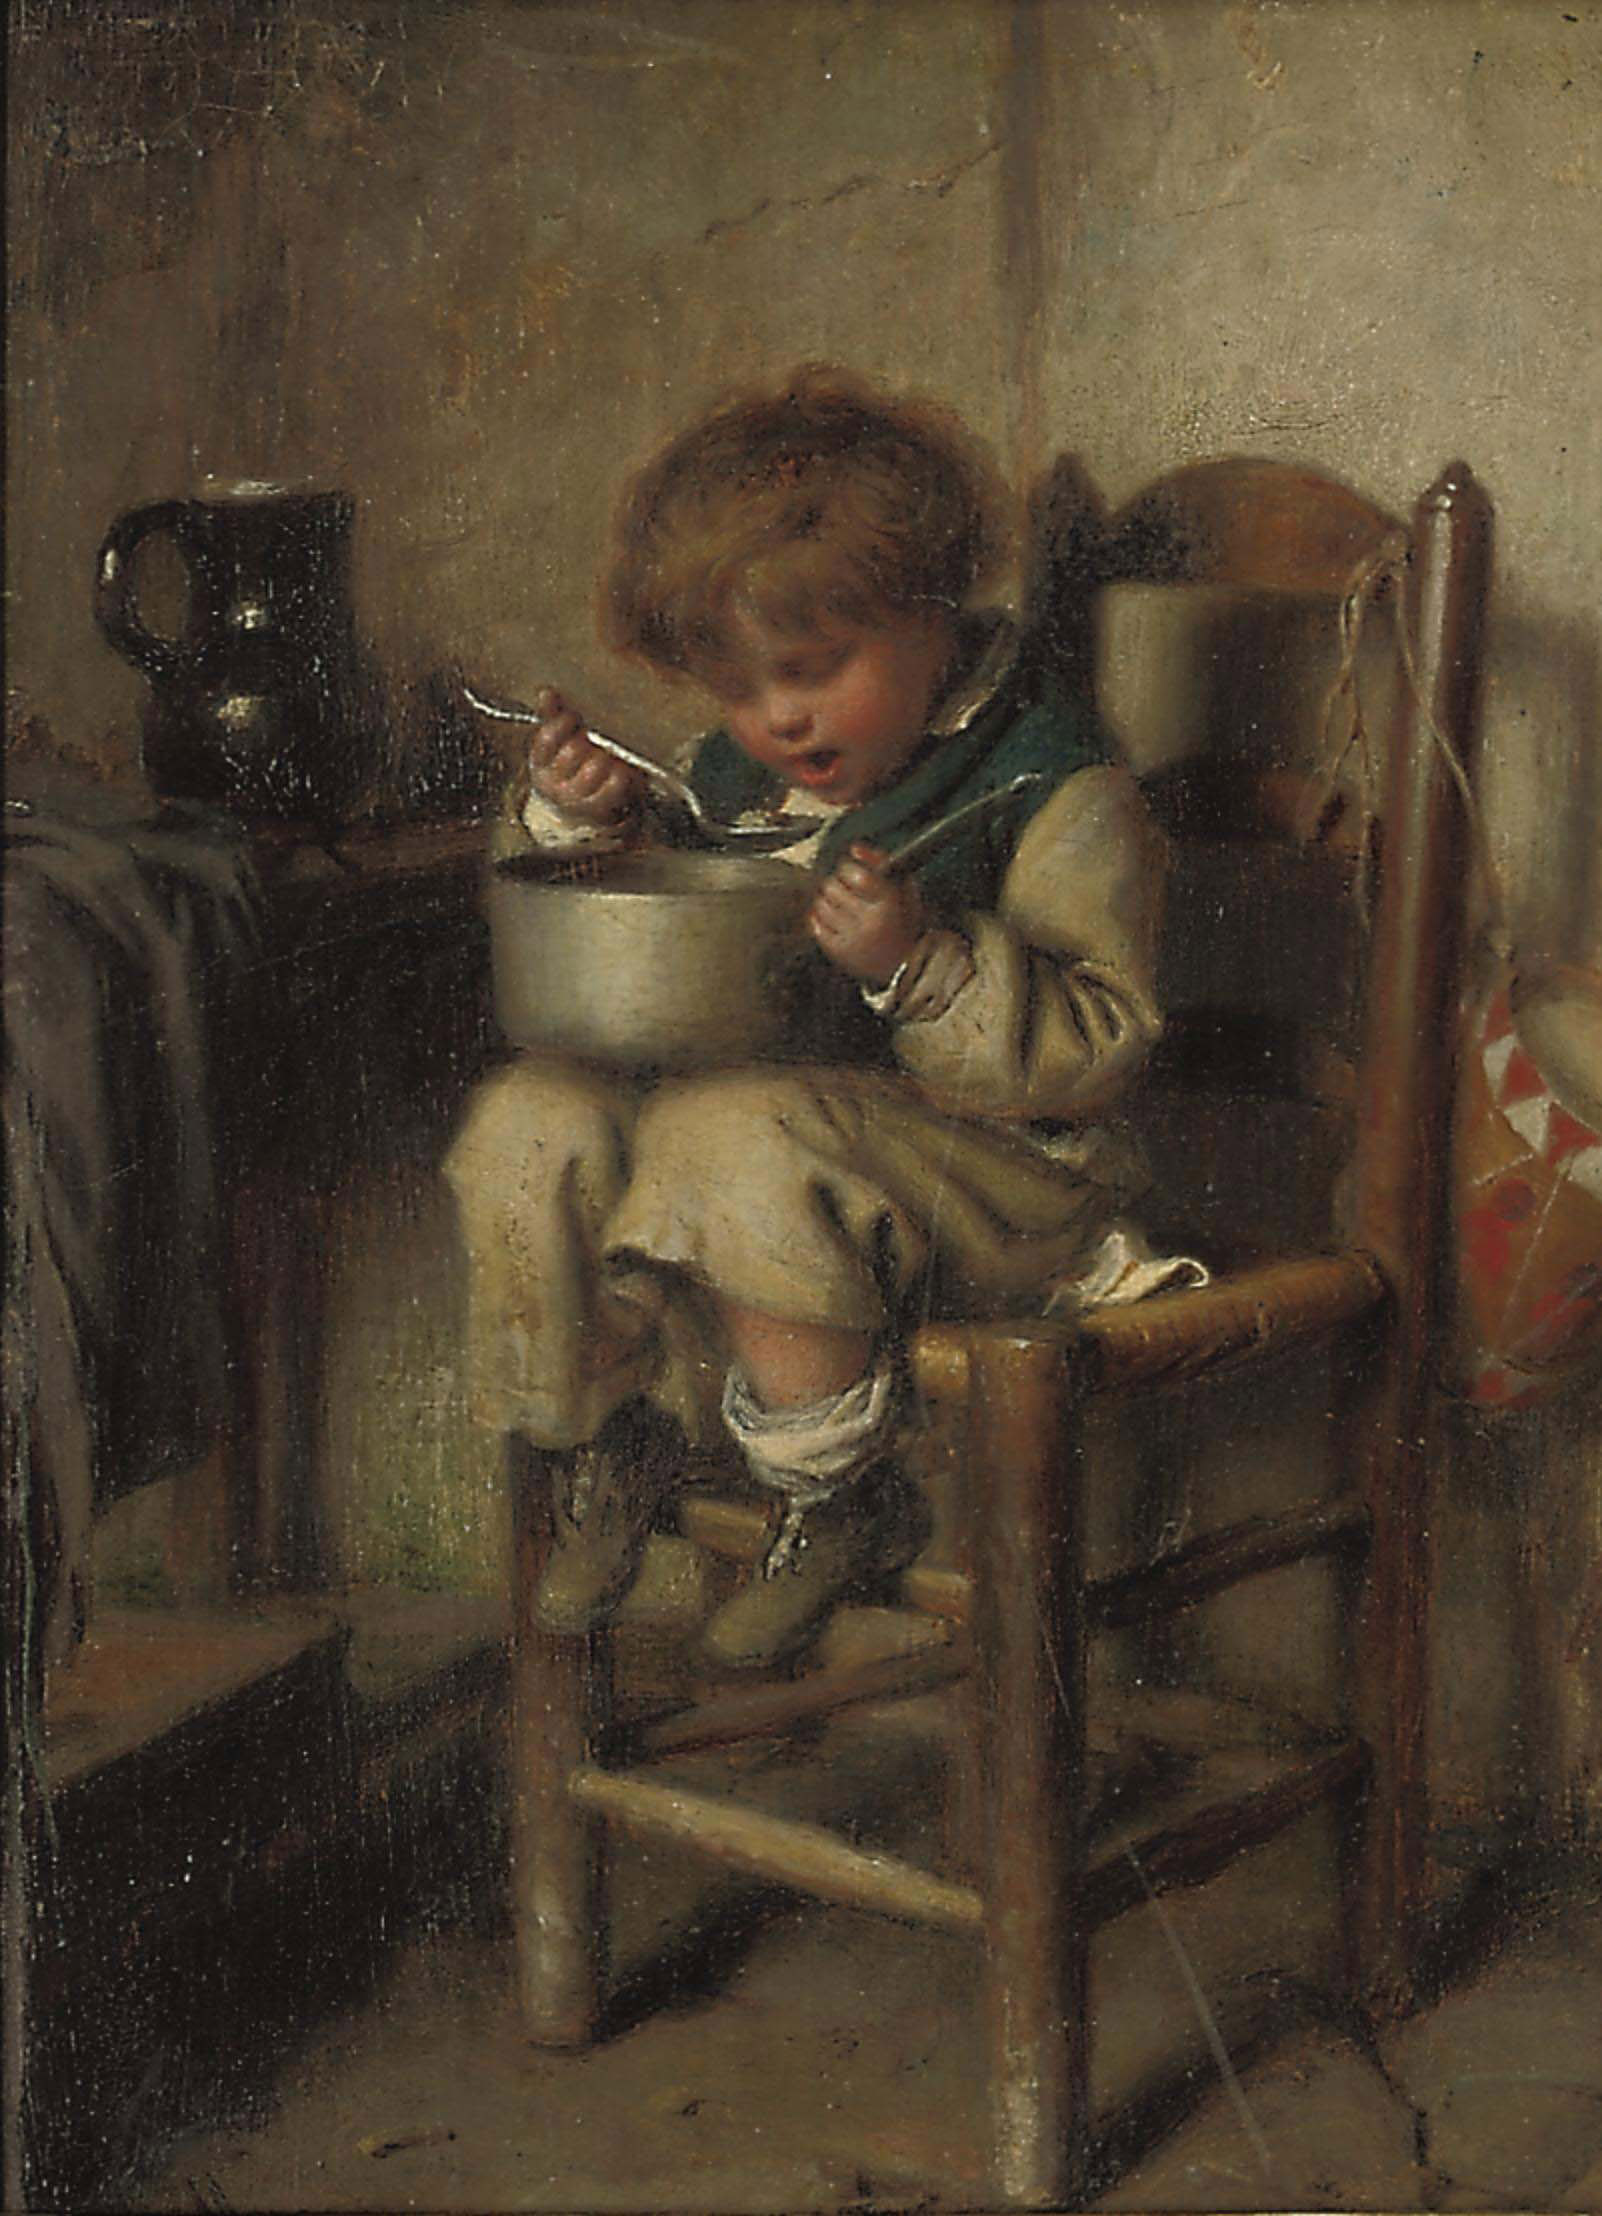 A boy eating porridge